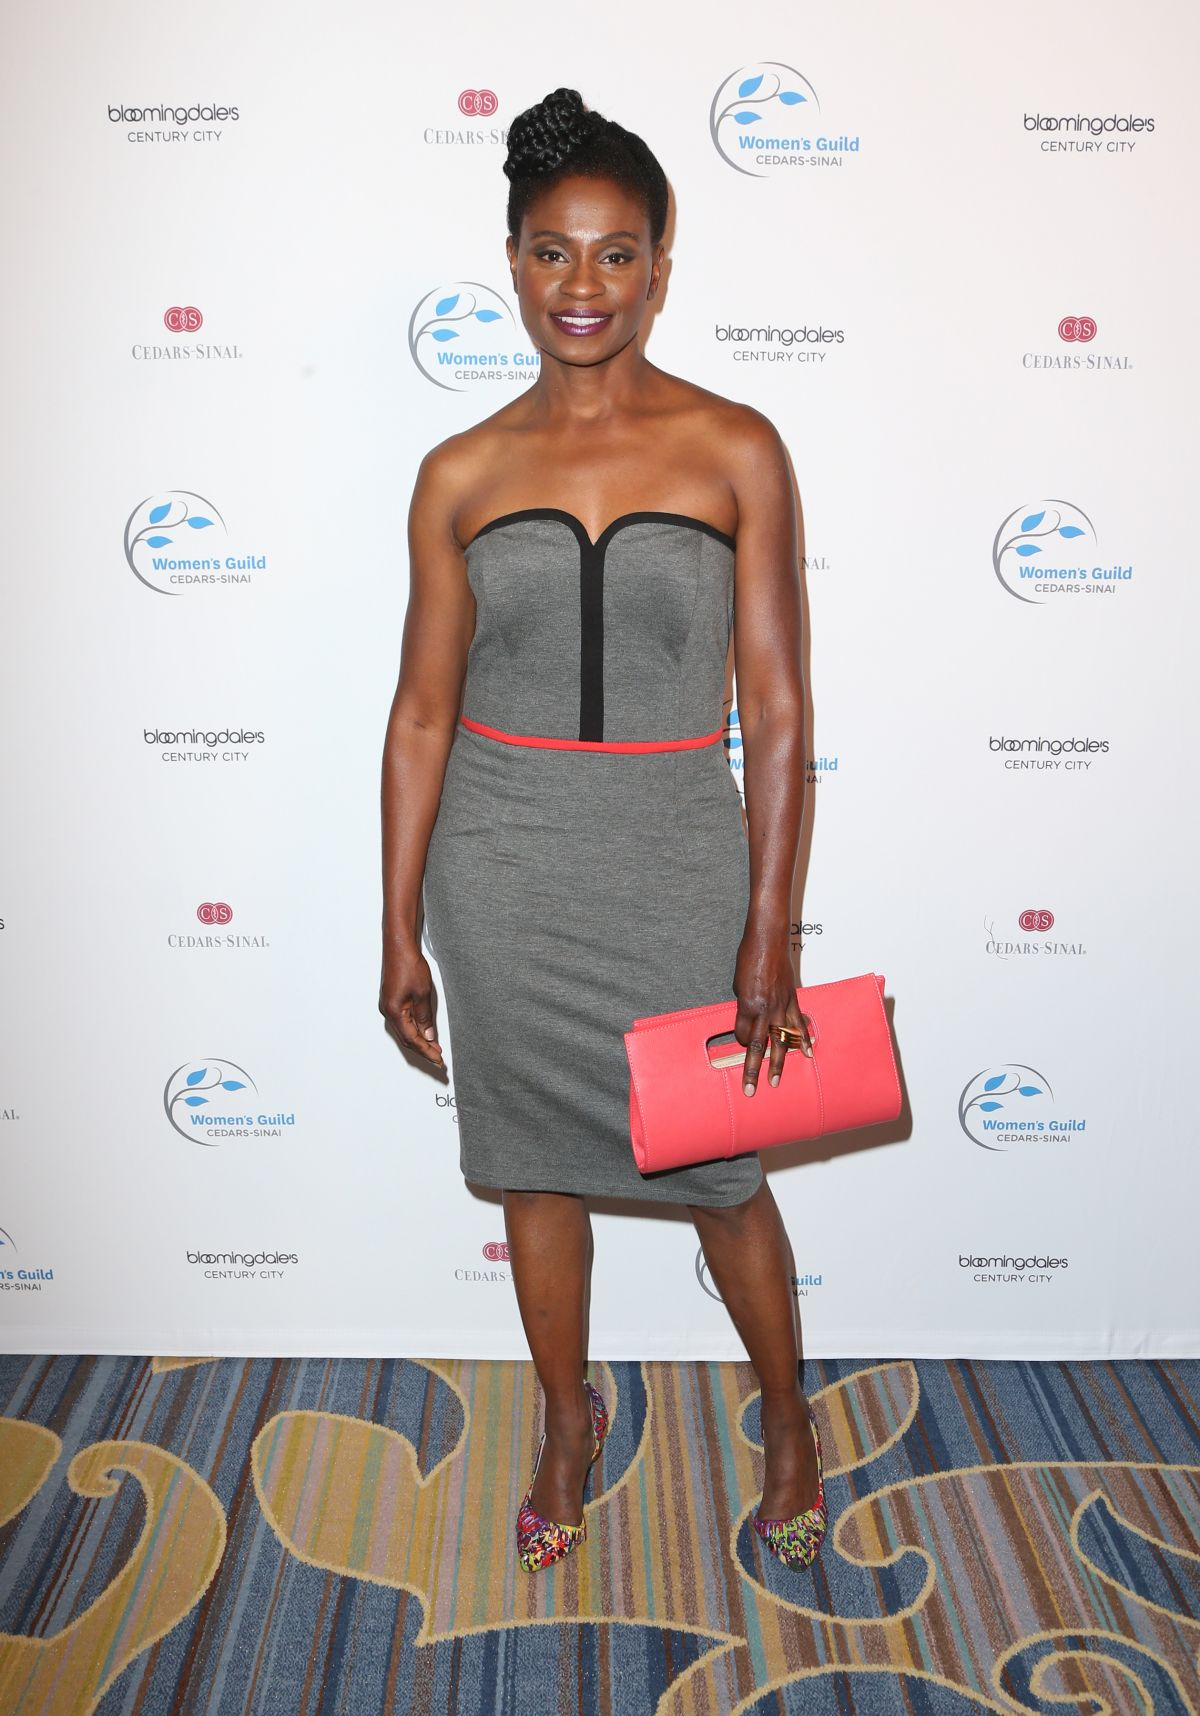 ADINA PORTER at Women's Guild Cedars Sinai Annual Spring Luncheon in Los Angeles 04/20/2017   adina-porter-at-women-s-guild-cedars-sinai-annual-spring-luncheon-in-los-angeles-04-20-2017_10